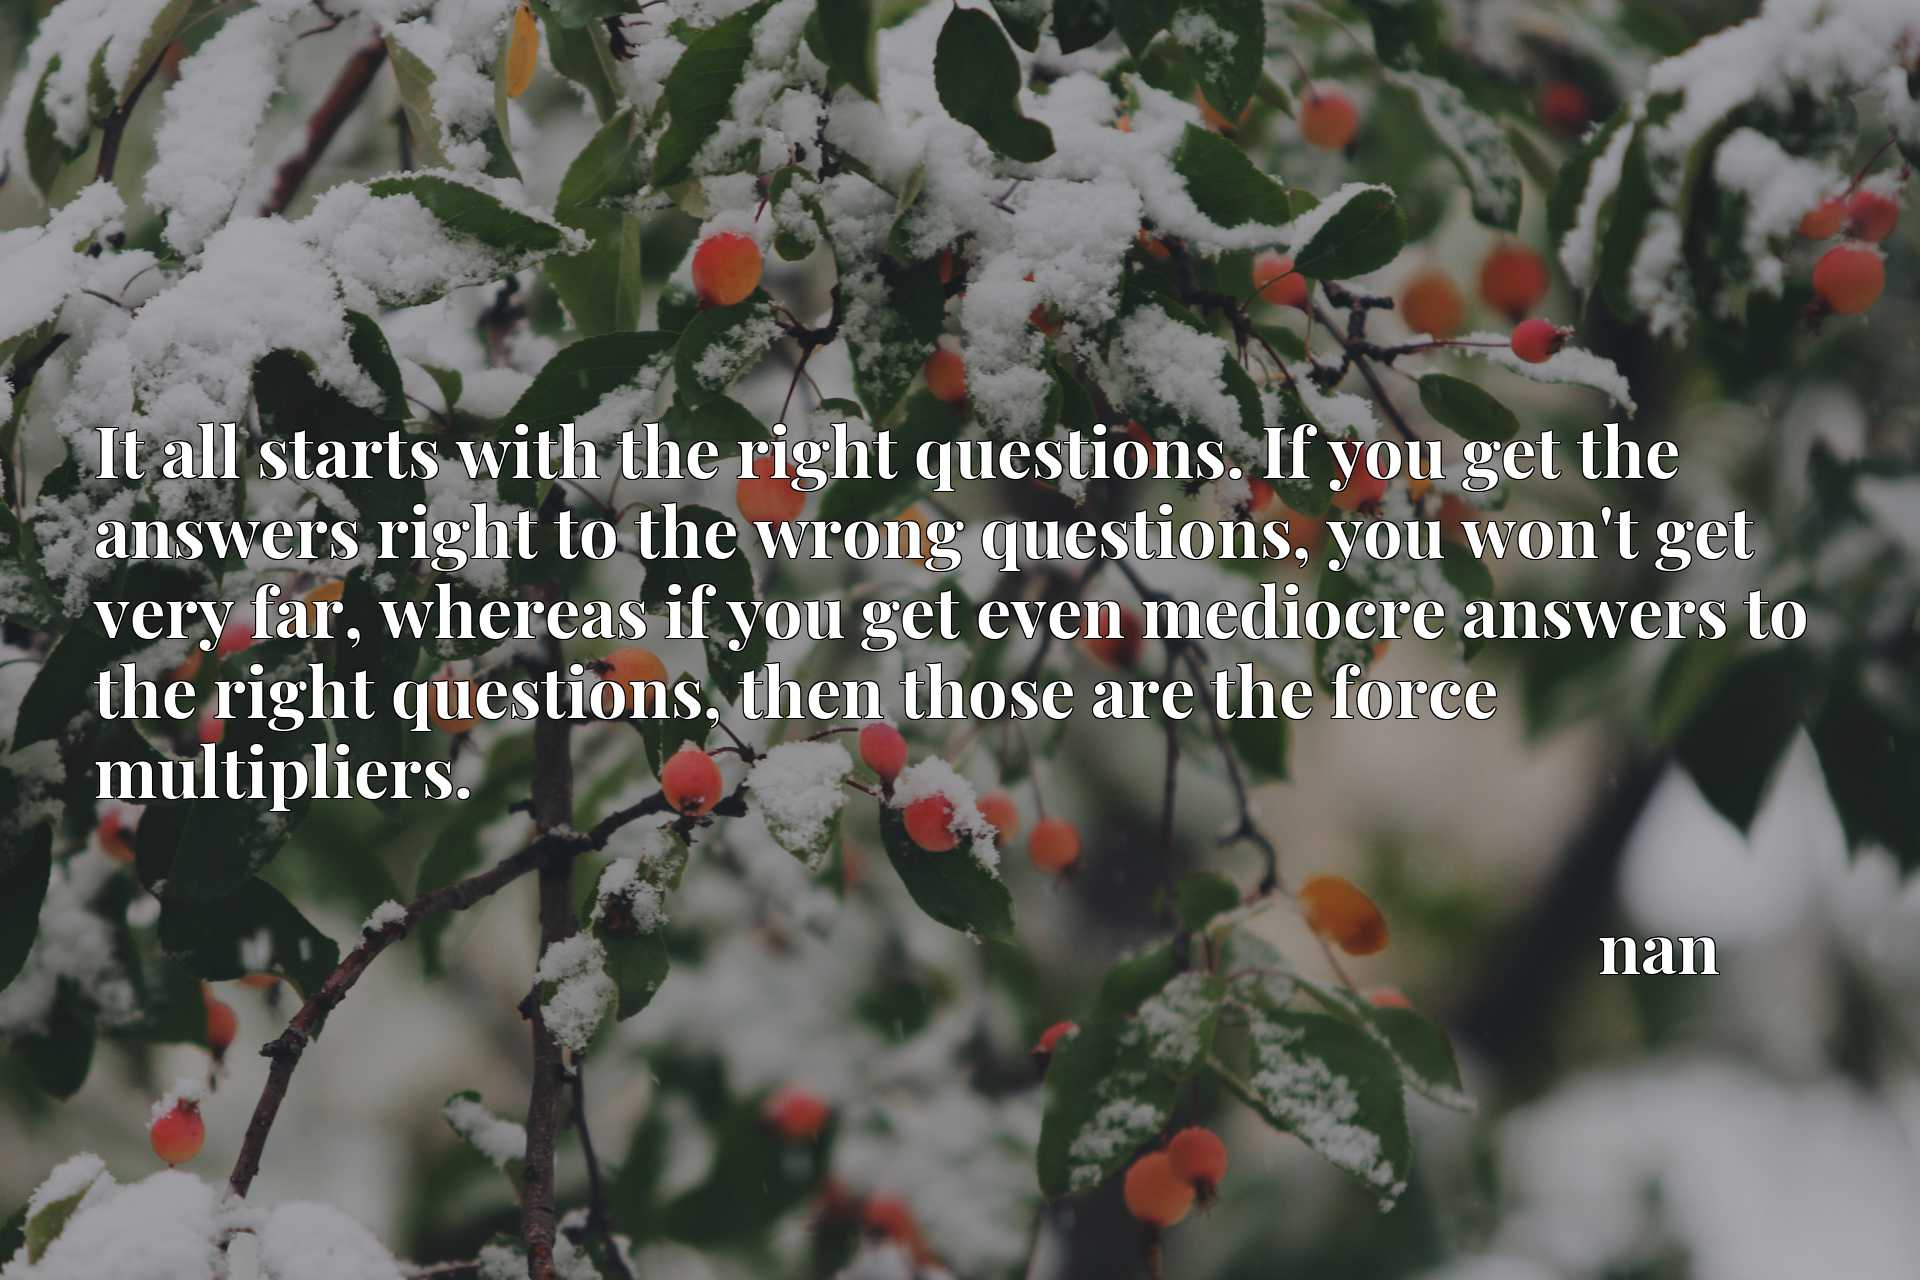 It all starts with the right questions. If you get the answers right to the wrong questions, you won't get very far, whereas if you get even mediocre answers to the right questions, then those are the force multipliers.